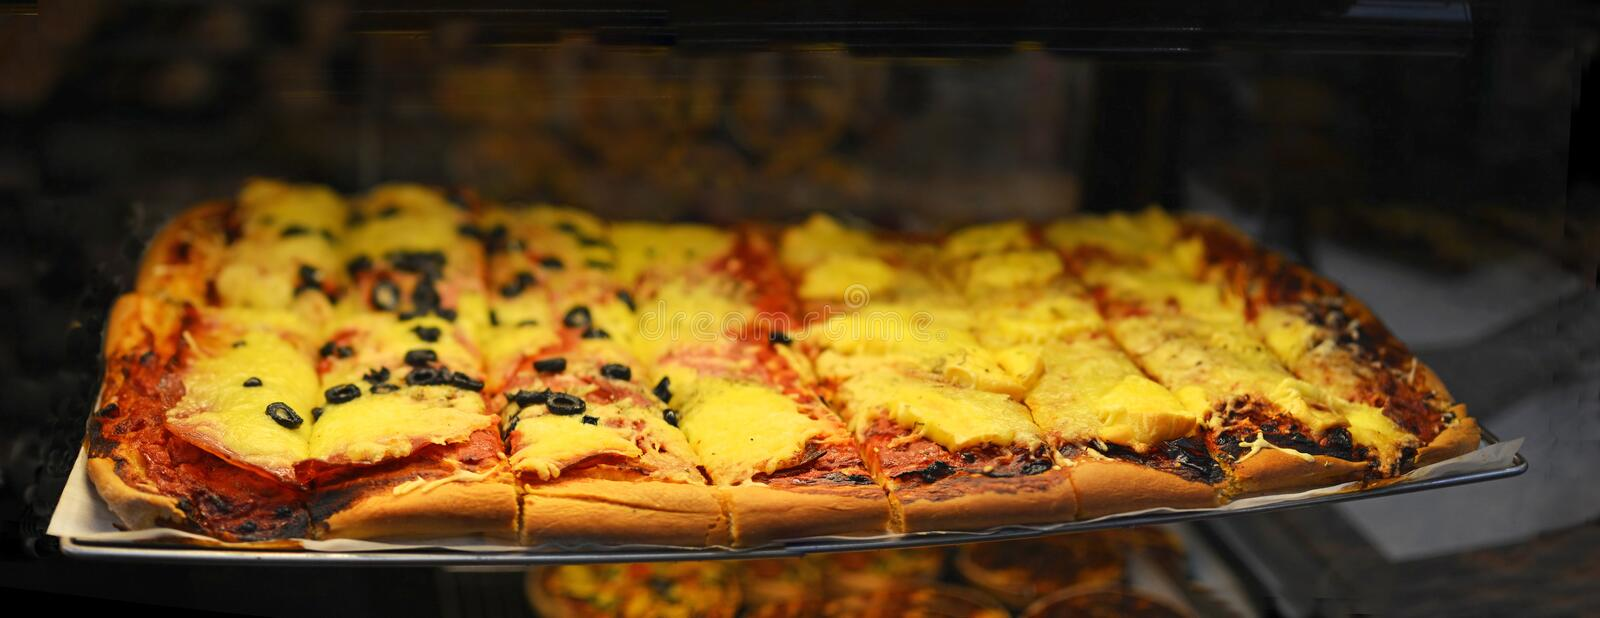 French Style Pizza panorama featuring cheese, tomato and olives stock image